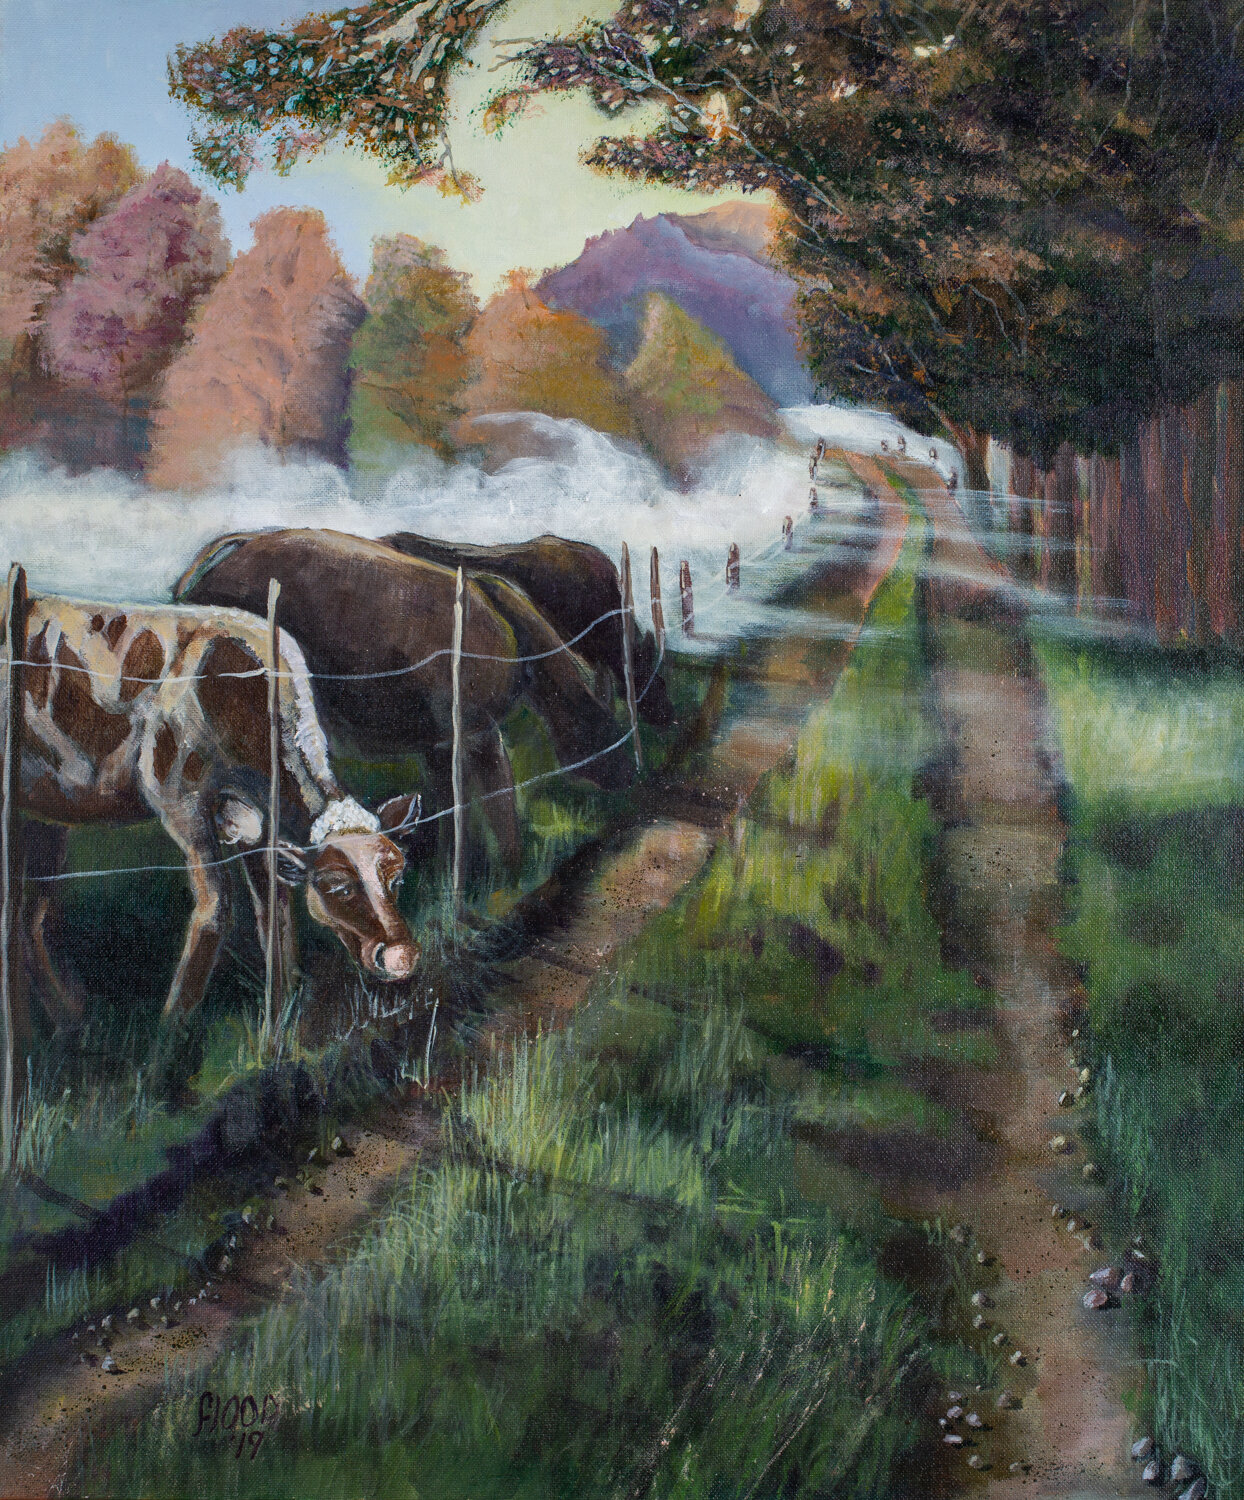 The Grass is Always Greener, by Claudia Flood